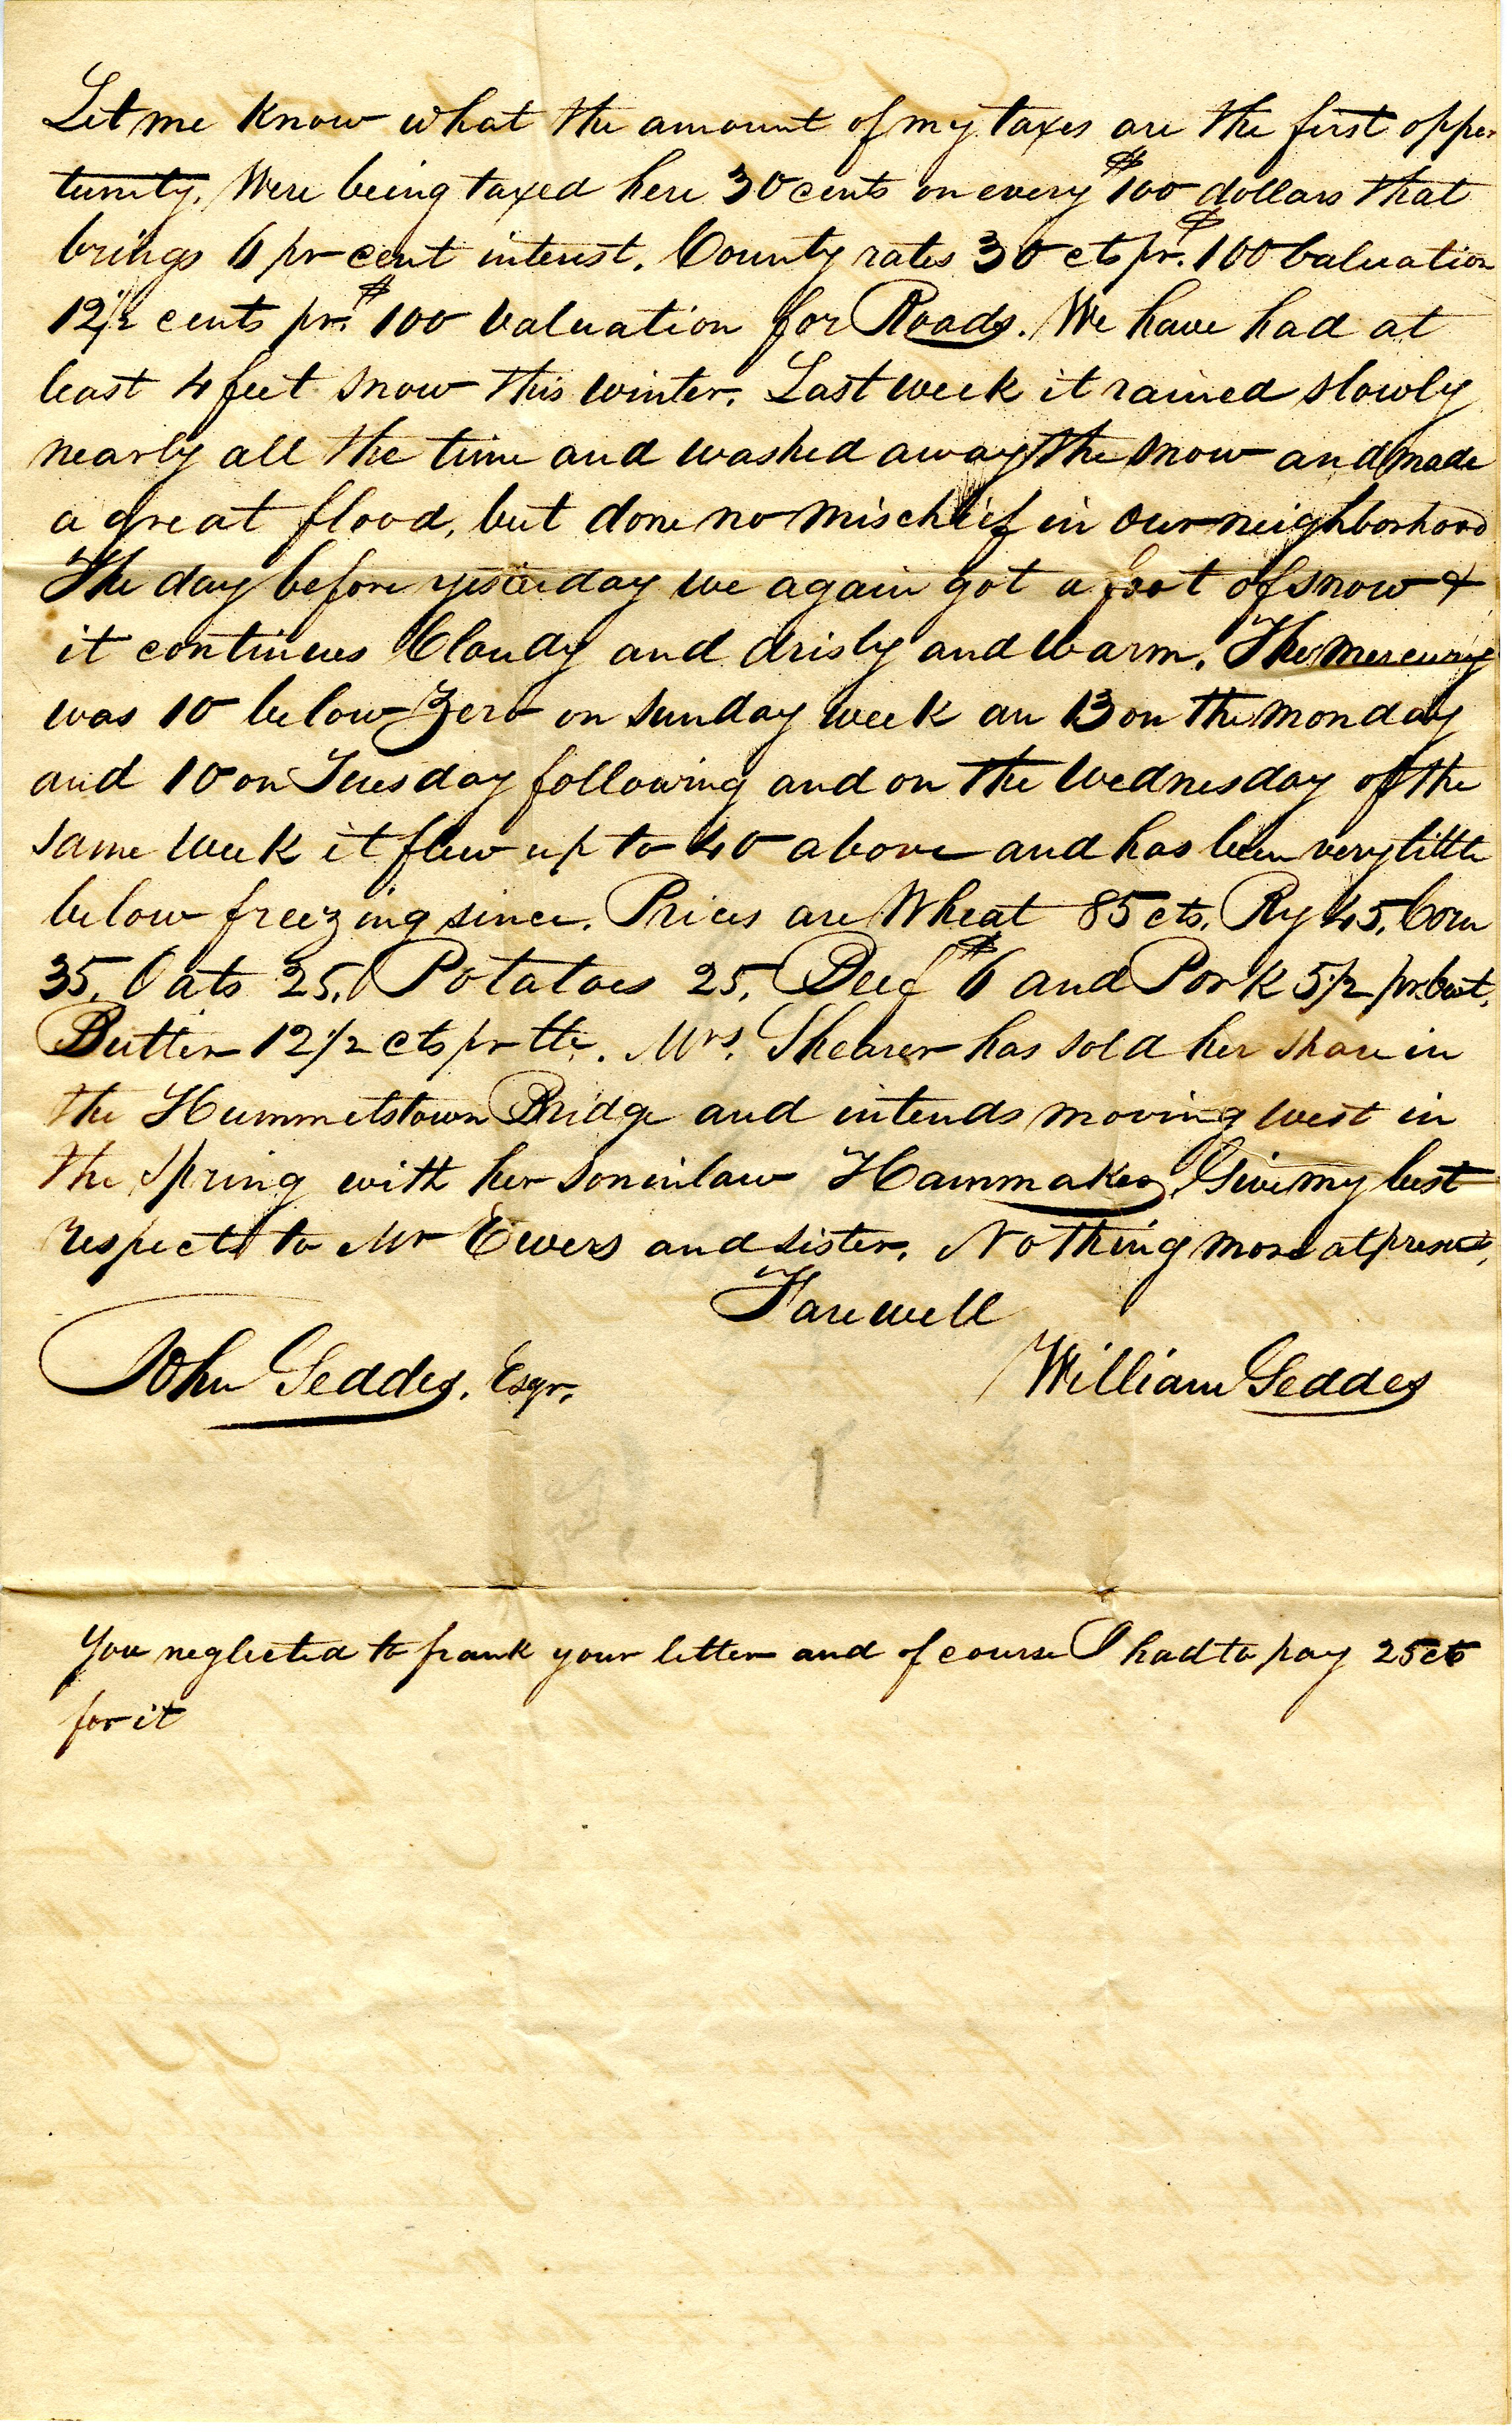 Letter From William Geddes to John Geddes, January 15, 1841 image